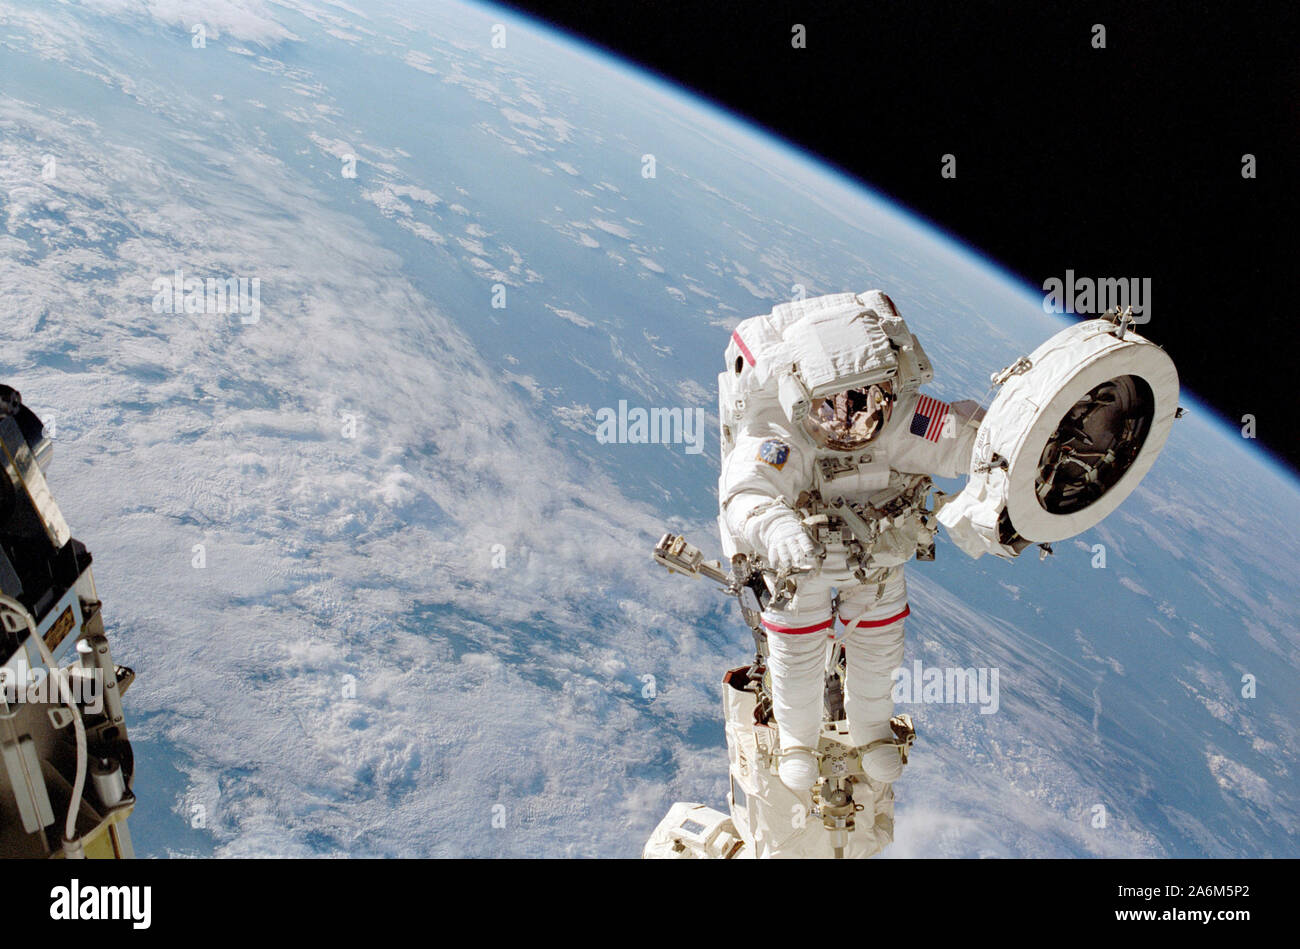 Astronaut Franklin R. Chang-Diaz works with a grapple fixture during extravehicular activity (EVA) to perform work on the International Space Station (ISS) Stock Photo